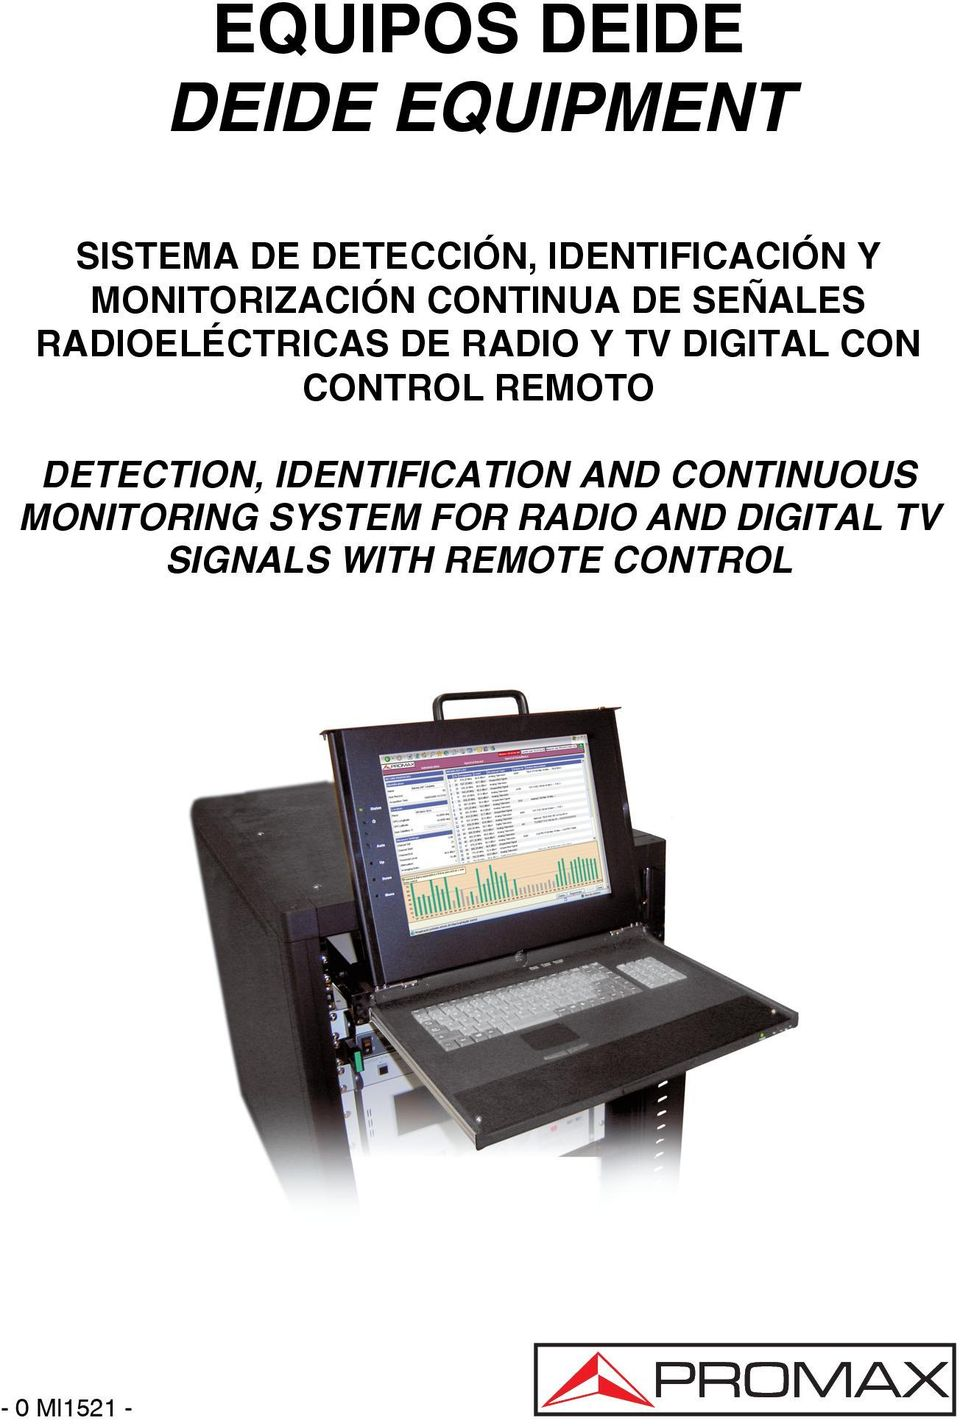 DIGITAL CON CONTROL REMOTO DETECTION, IDENTIFICATION AND CONTINUOUS